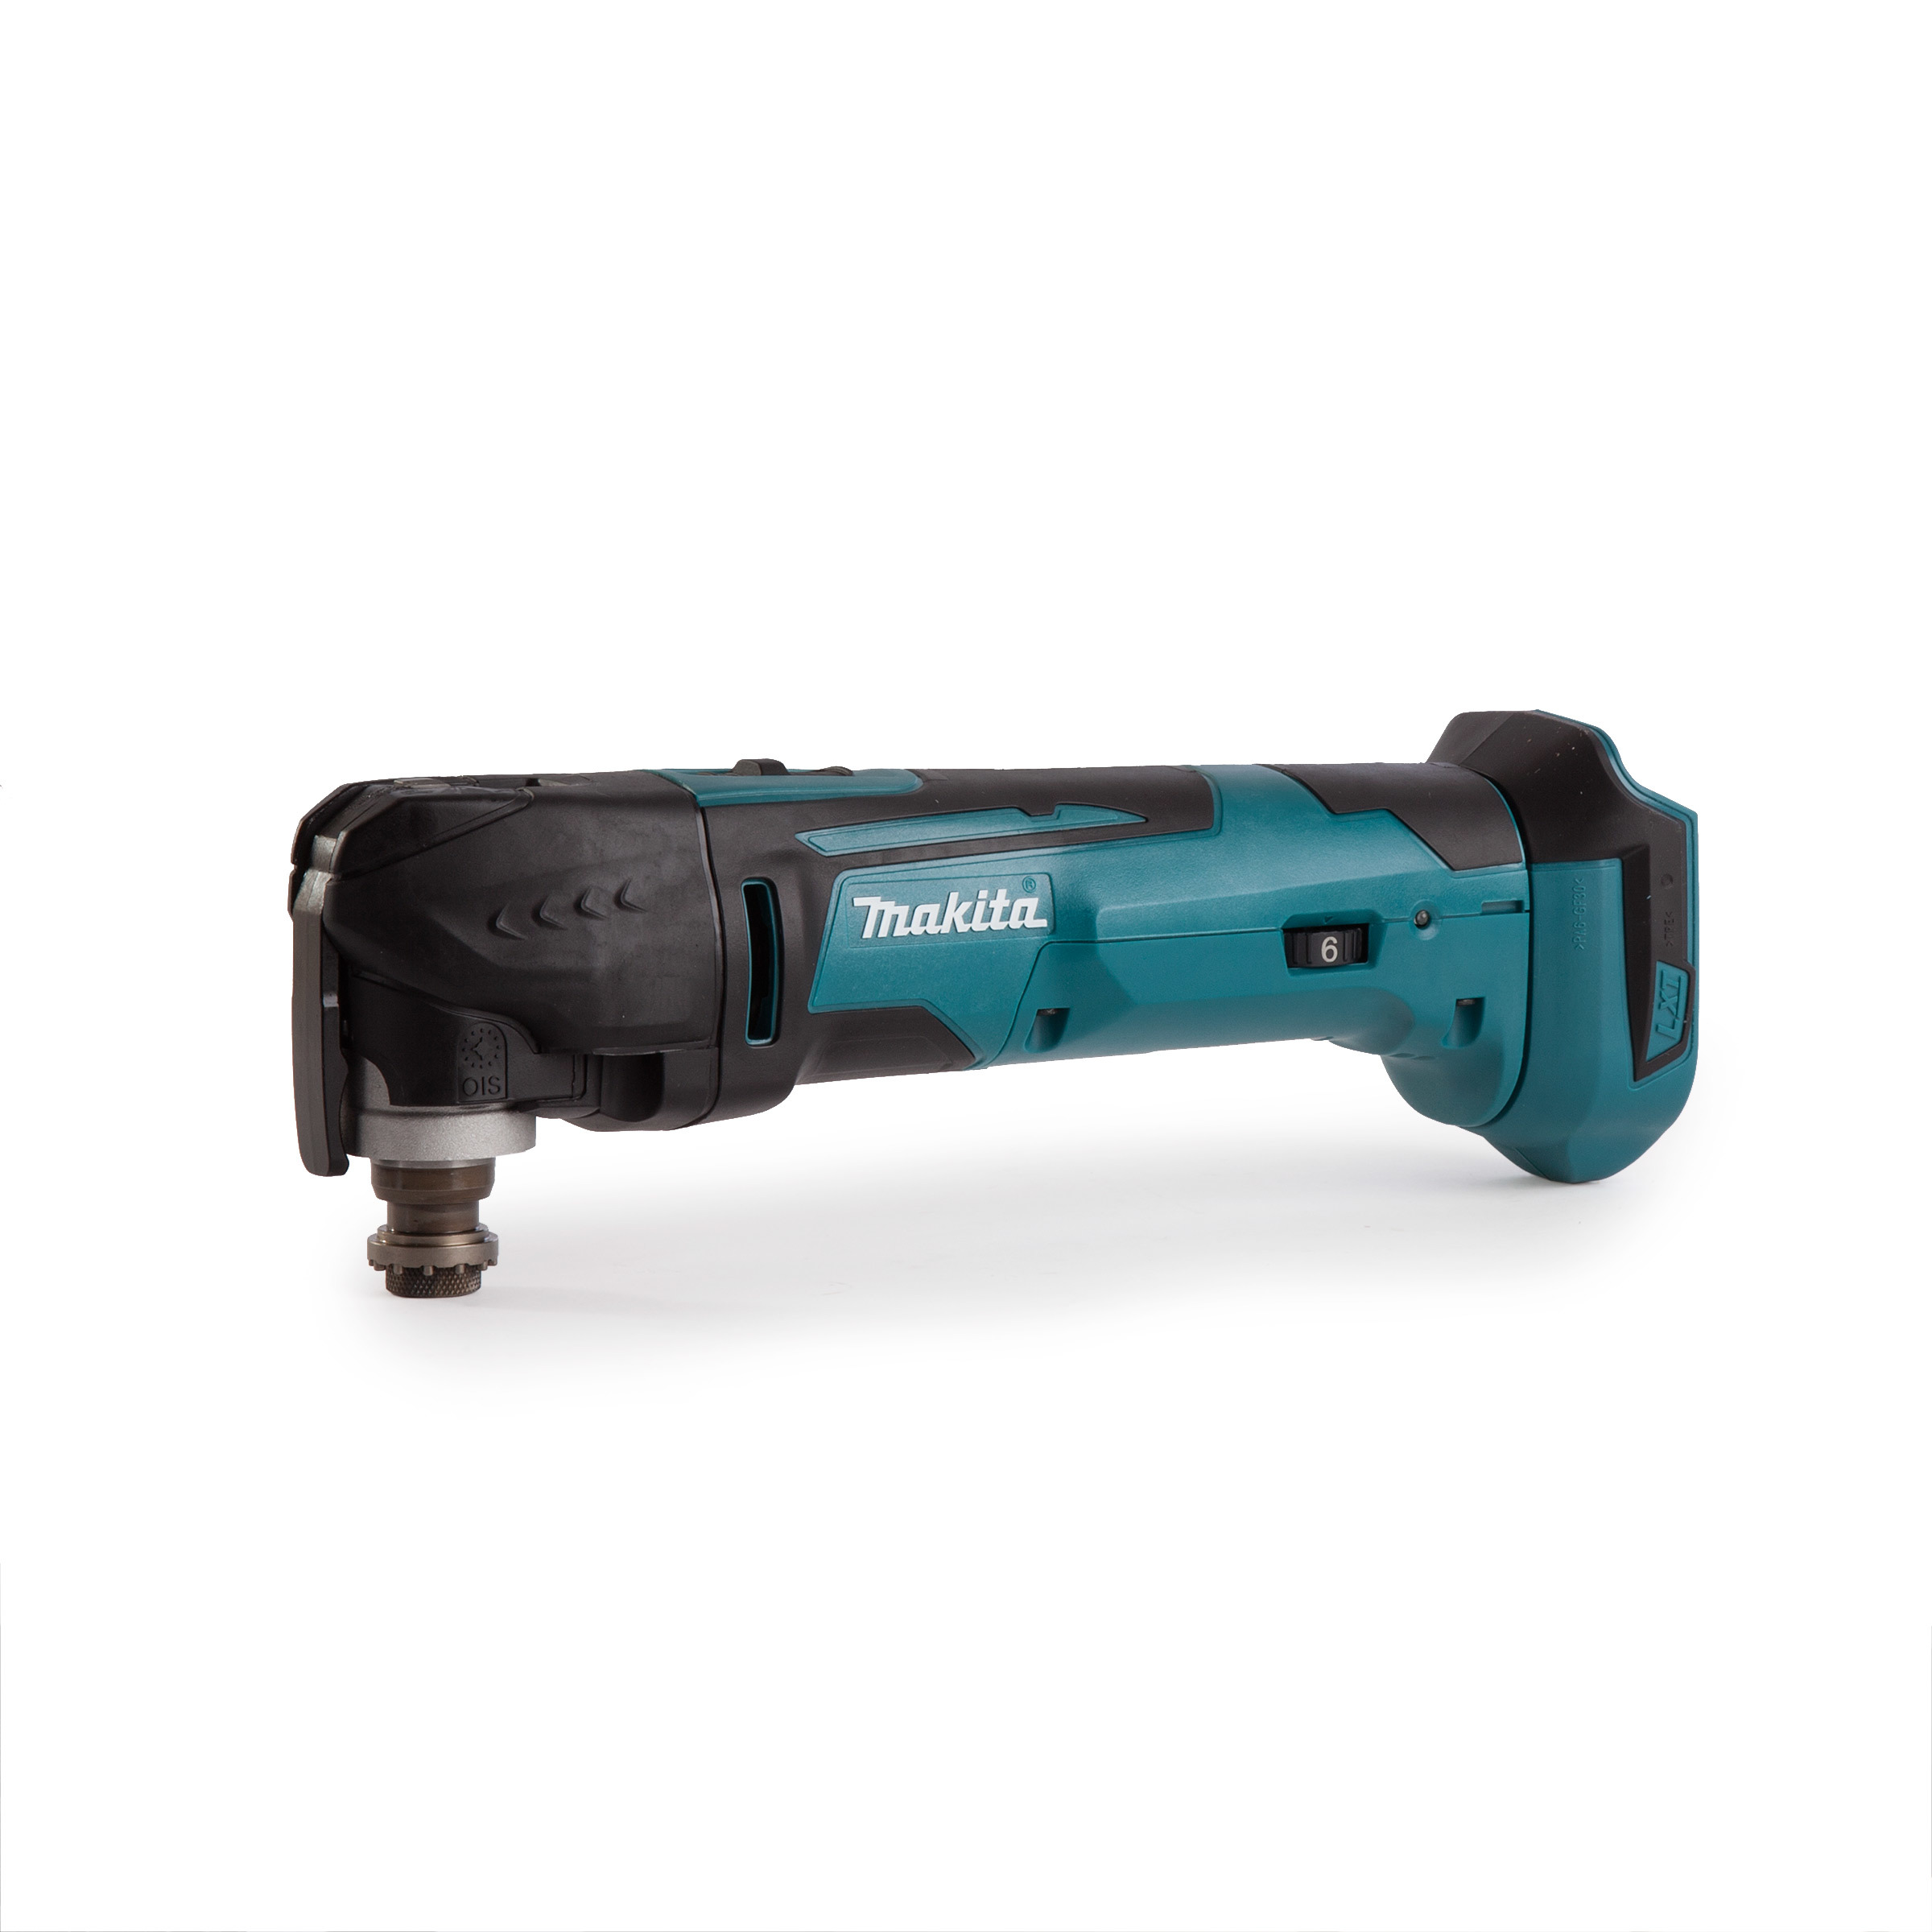 makita 18v cordless multi tool solo my power tools. Black Bedroom Furniture Sets. Home Design Ideas